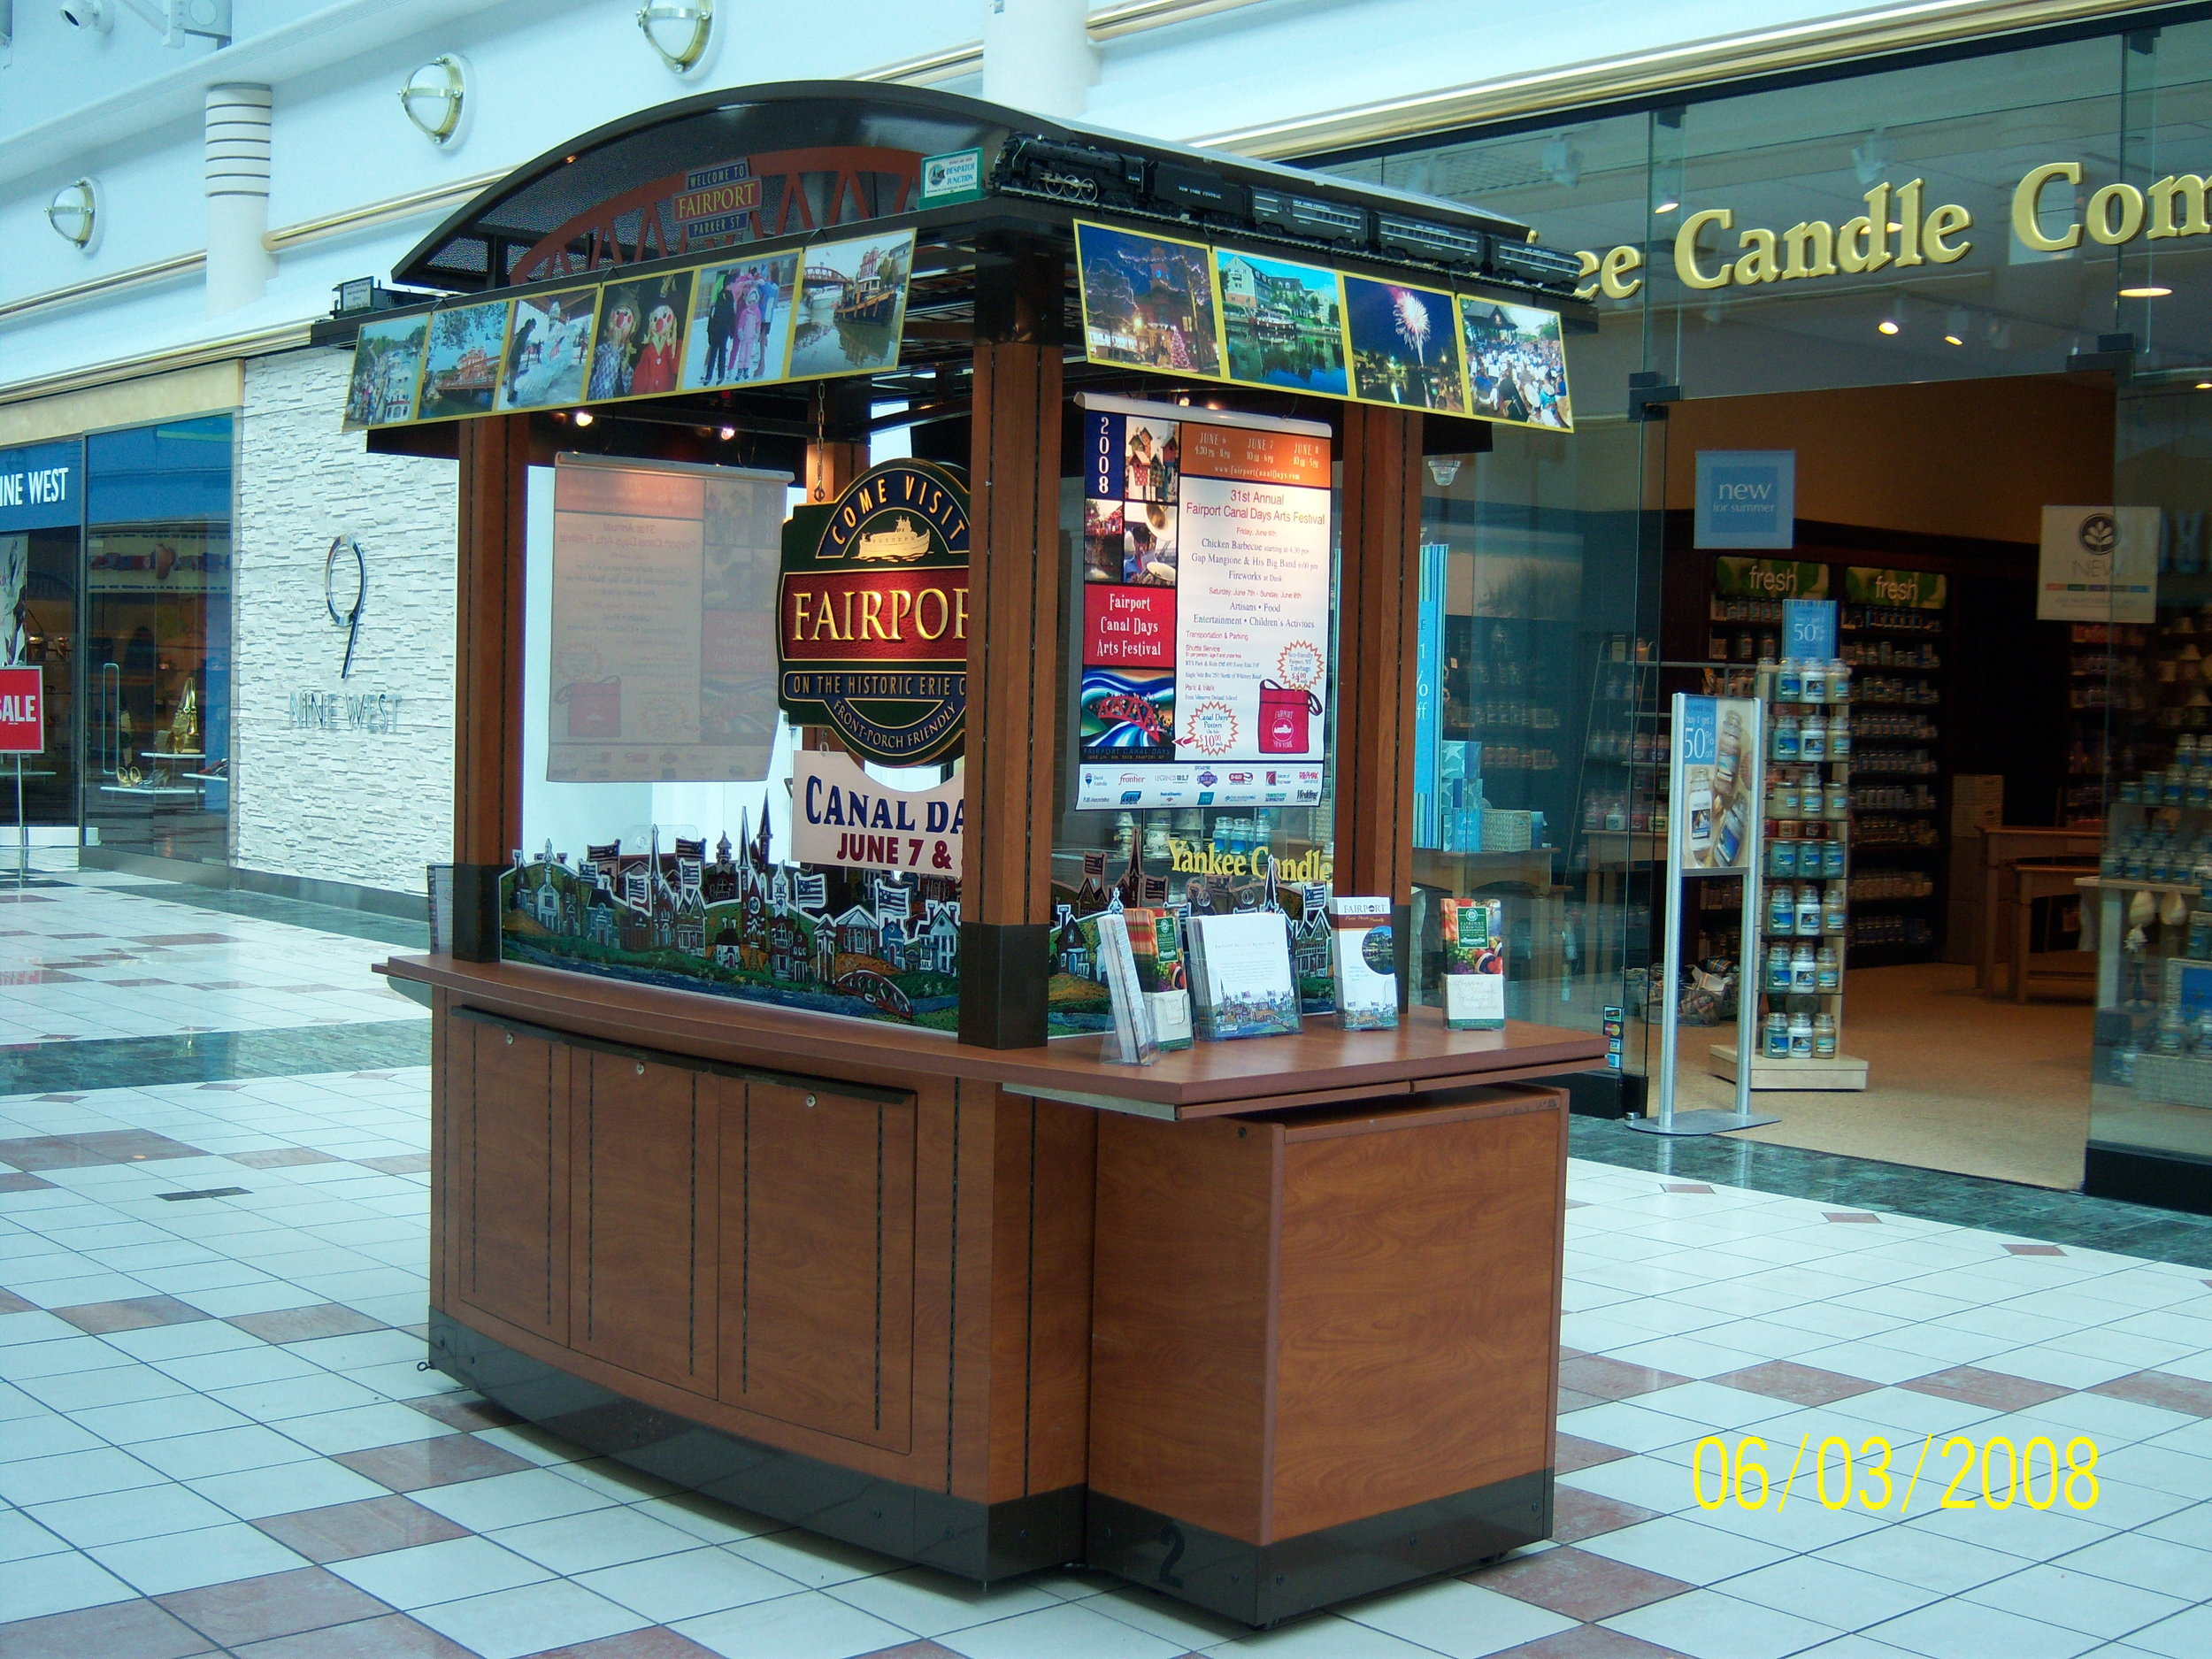 In 2006 we installed this tourism kiosk as Eastview Mall. From it, thousands of flyers and brochures promoting Fairport festivals, events, and destinations were distributed to shoppers. This marketing program was supported by a member-item grant from then-Senator Alesi and Wilmorite Corporation.